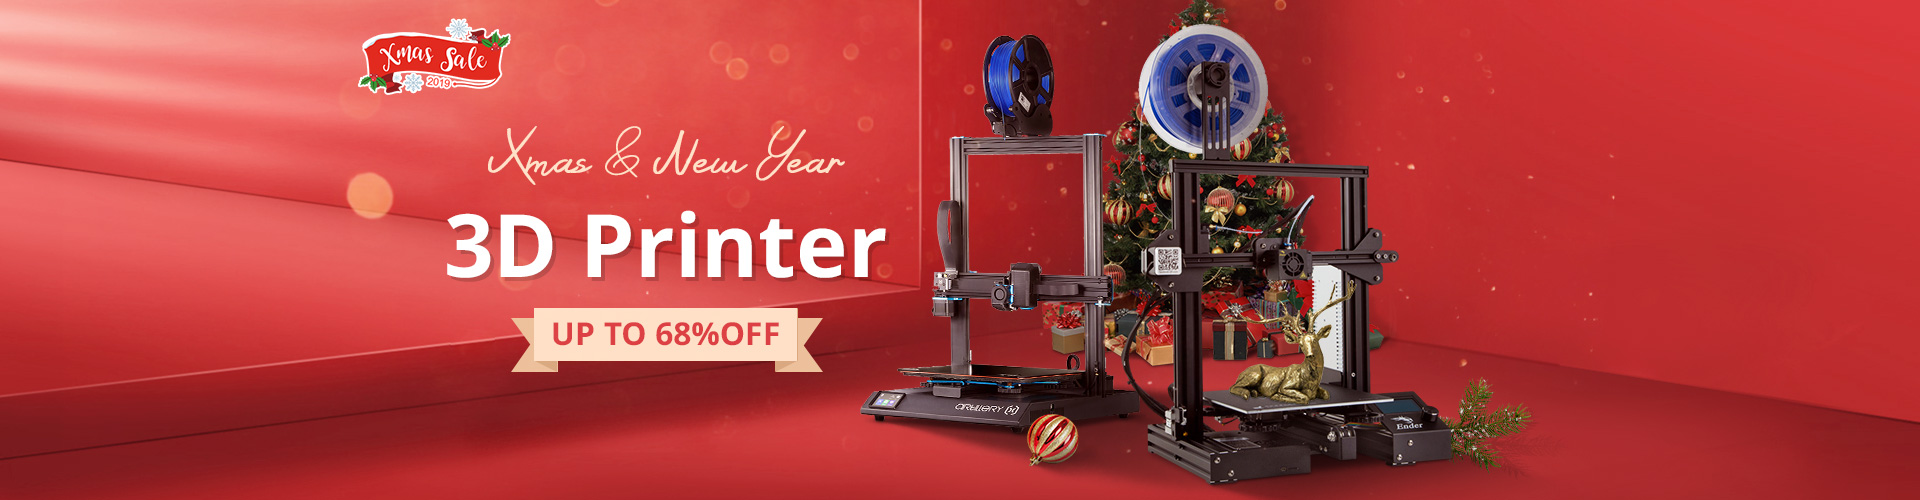 UP to 68% OFF for 3D Printer & Supplies